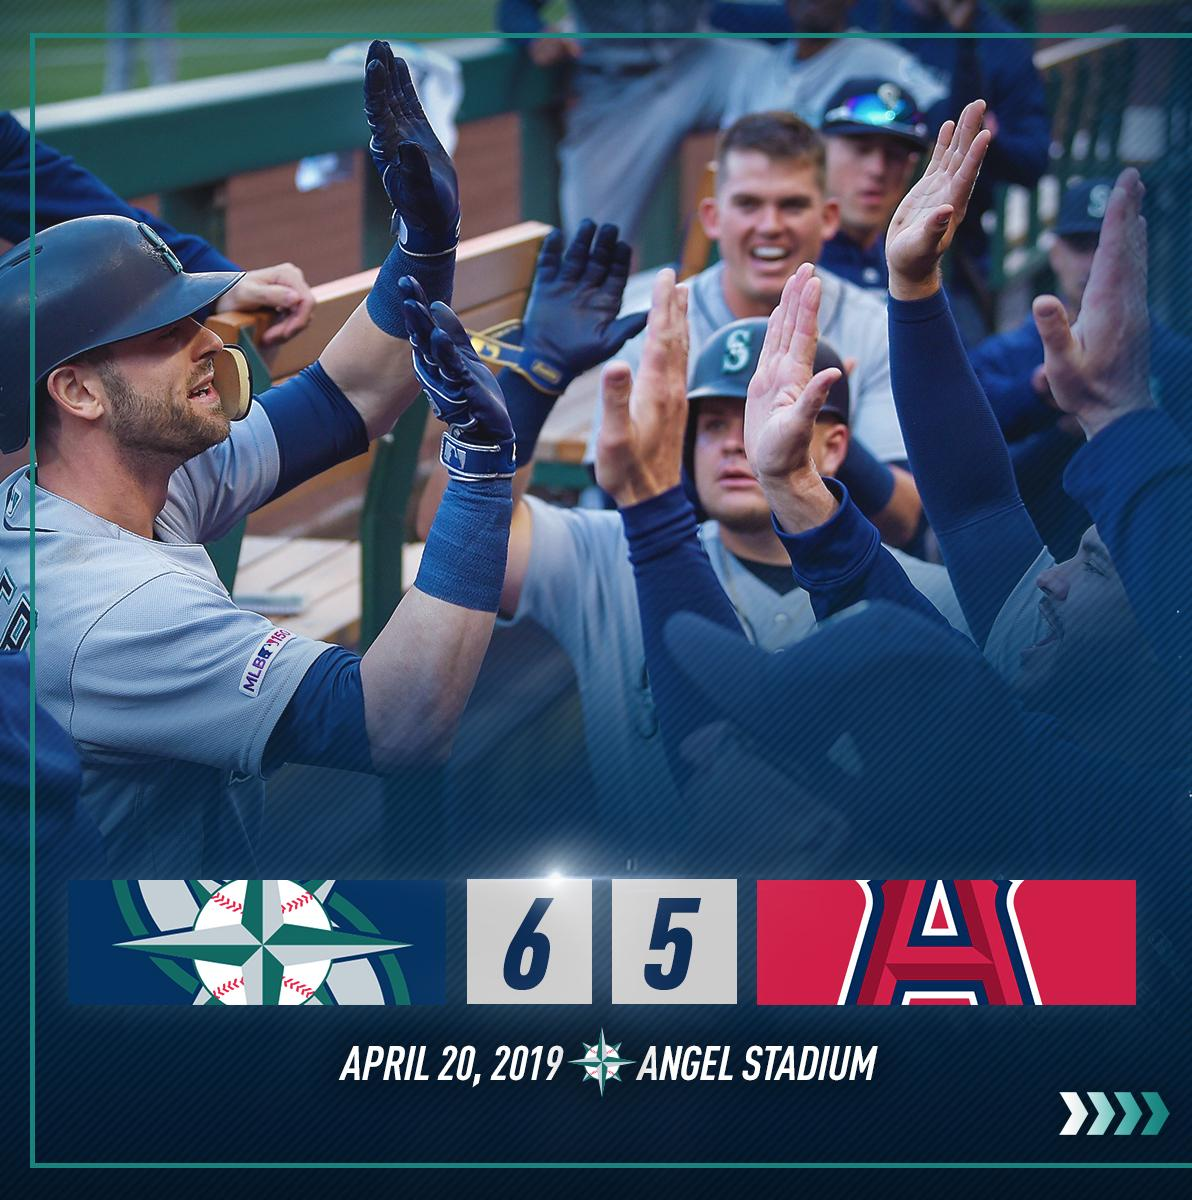 The Mariners secured a series win with a 6-5 victory over the Angels. #GoMariners  RECAP: https://atmlb.com/2KT0kkY